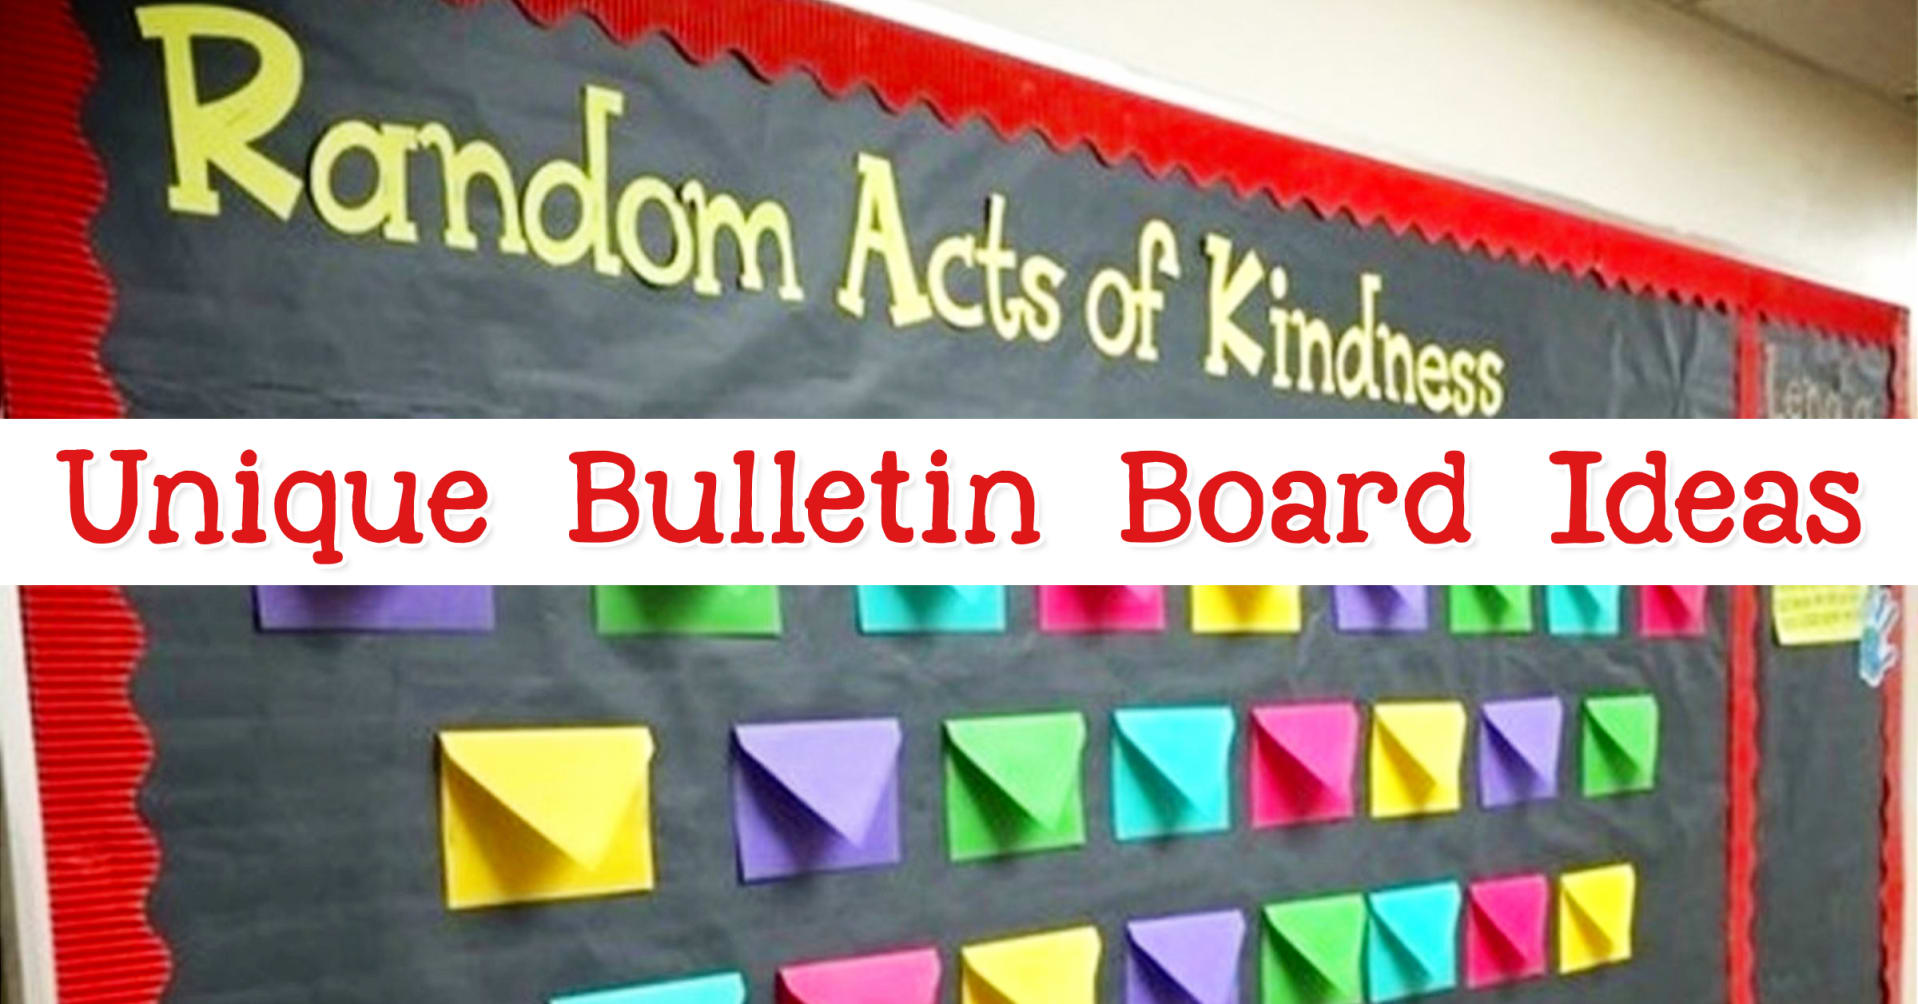 Decorative bulletin boards and bulletin board ideas - bulletin board materials and school bulletin board supplies and ideas for teachers in the classroom. Fun and easy DIY bulletin board ideas for January, for back to school and ideas for fall, spring and Holiday bulletin boards